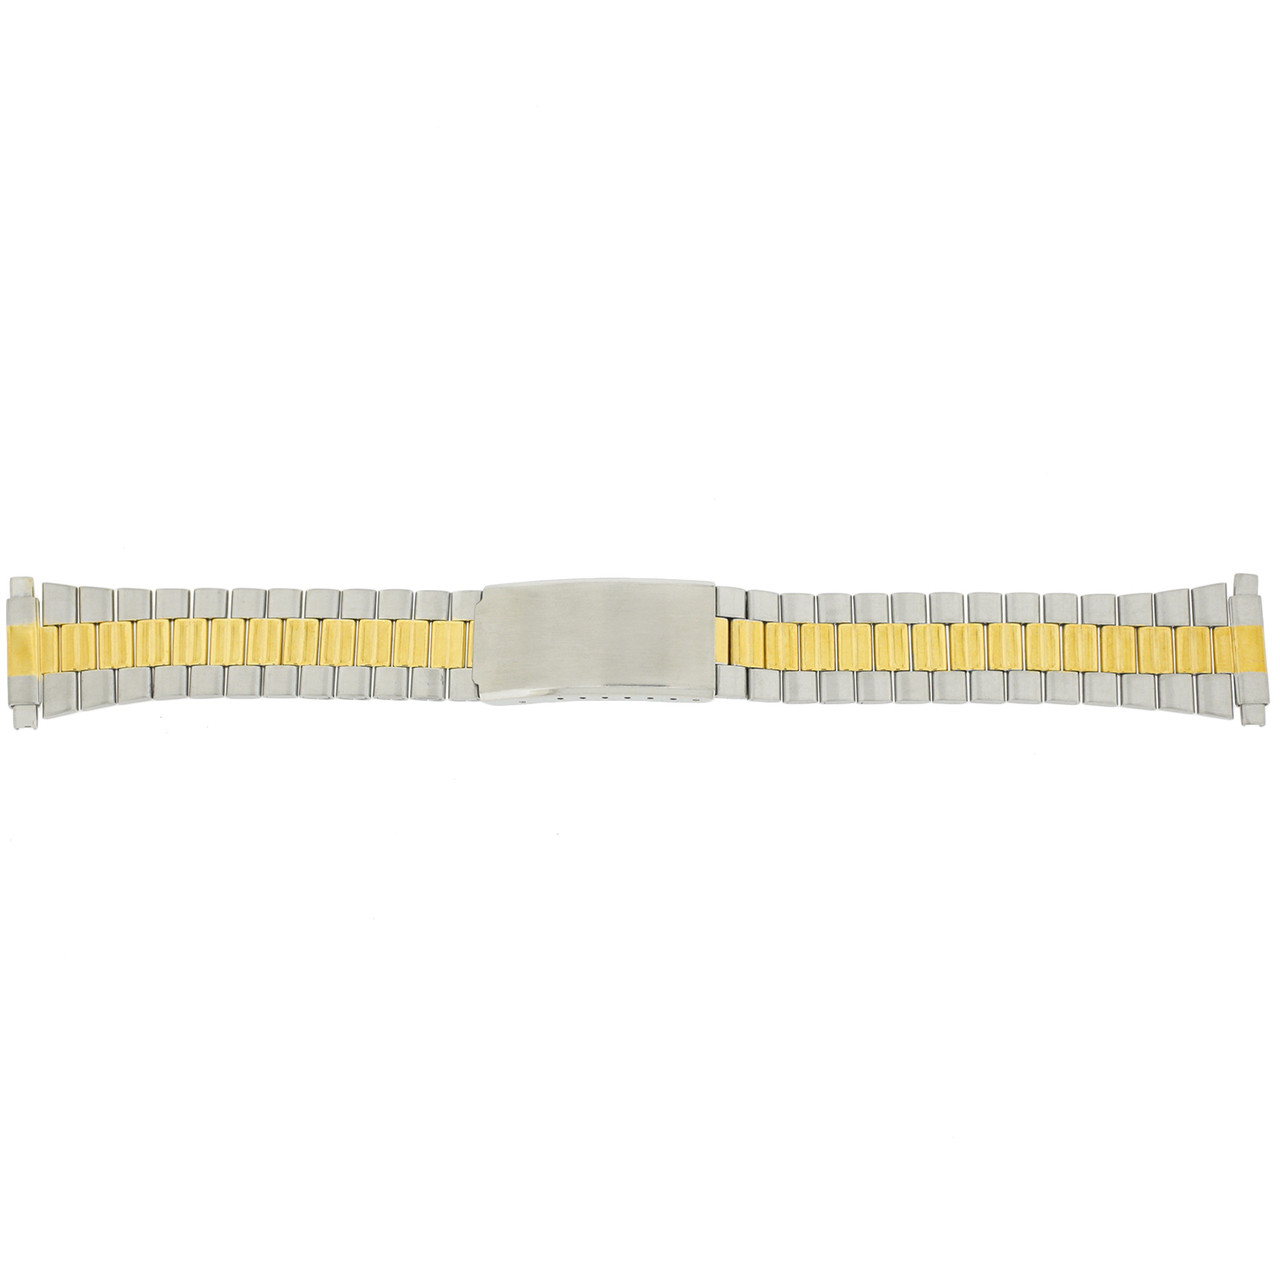 Watch Band Link Metal 2-Tone Spring Ends 17mm-22mm - Main